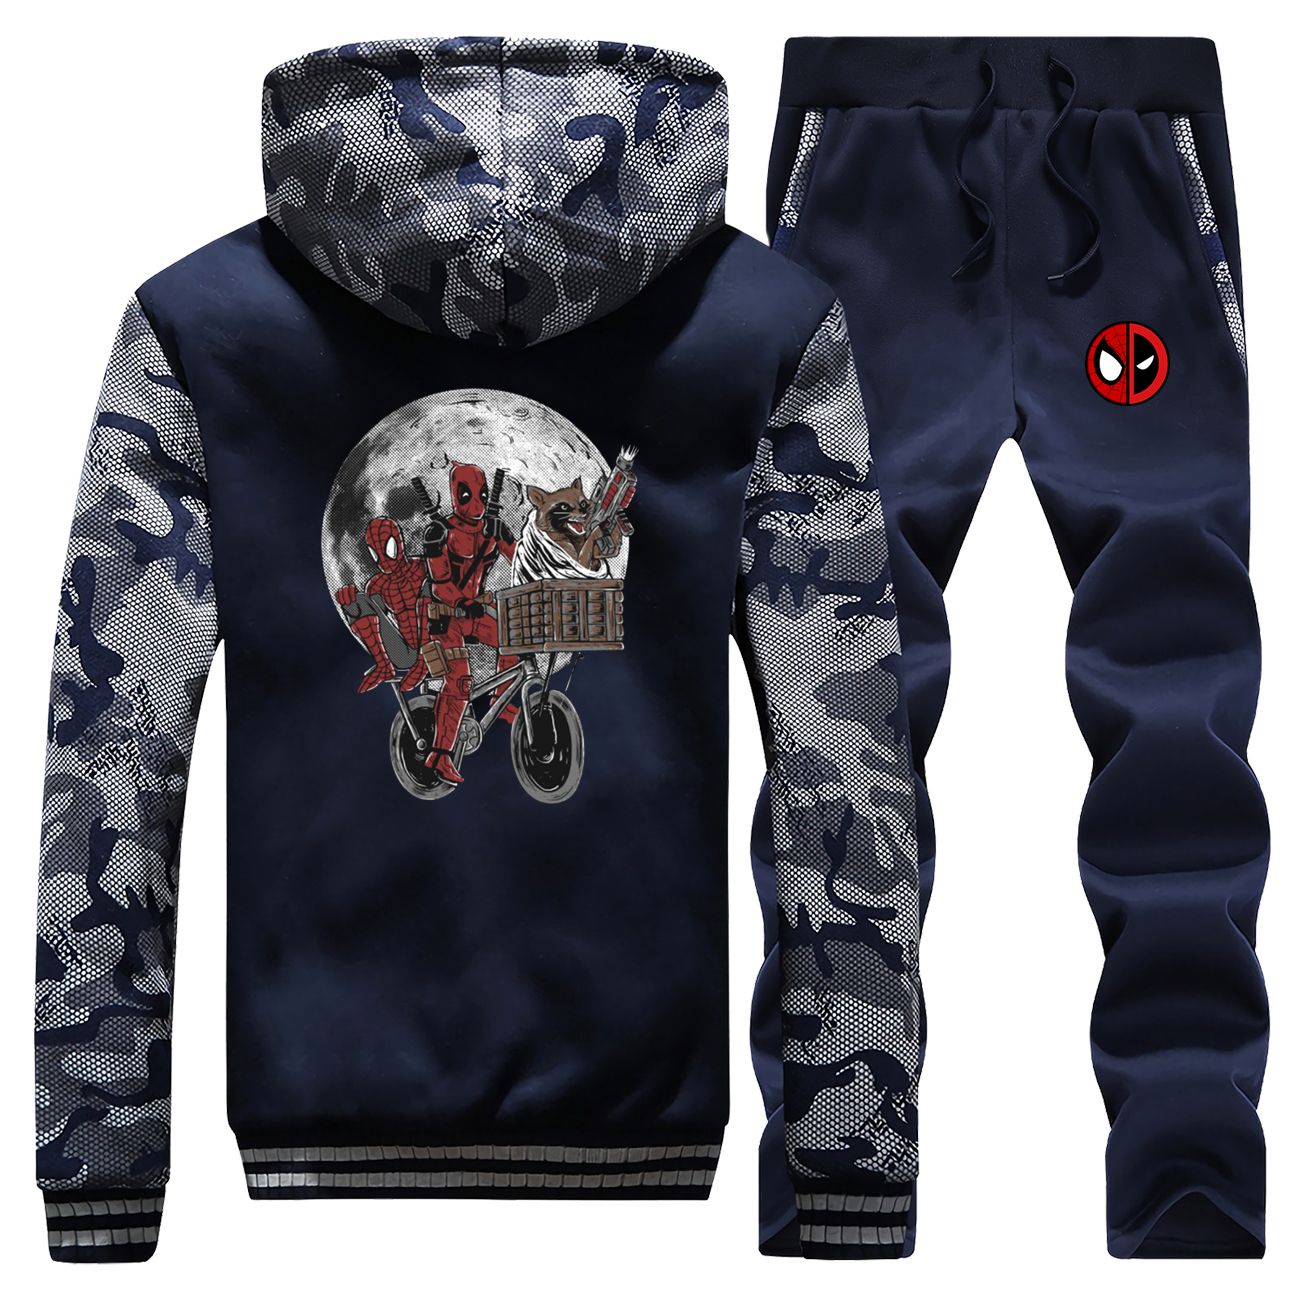 Marvel Print Men Jacket+Pants 2Pieces Suit Winter Super Hero Spiderman And Deadpool Pattern Thick Hooded Hoodies Sweatpants Sets